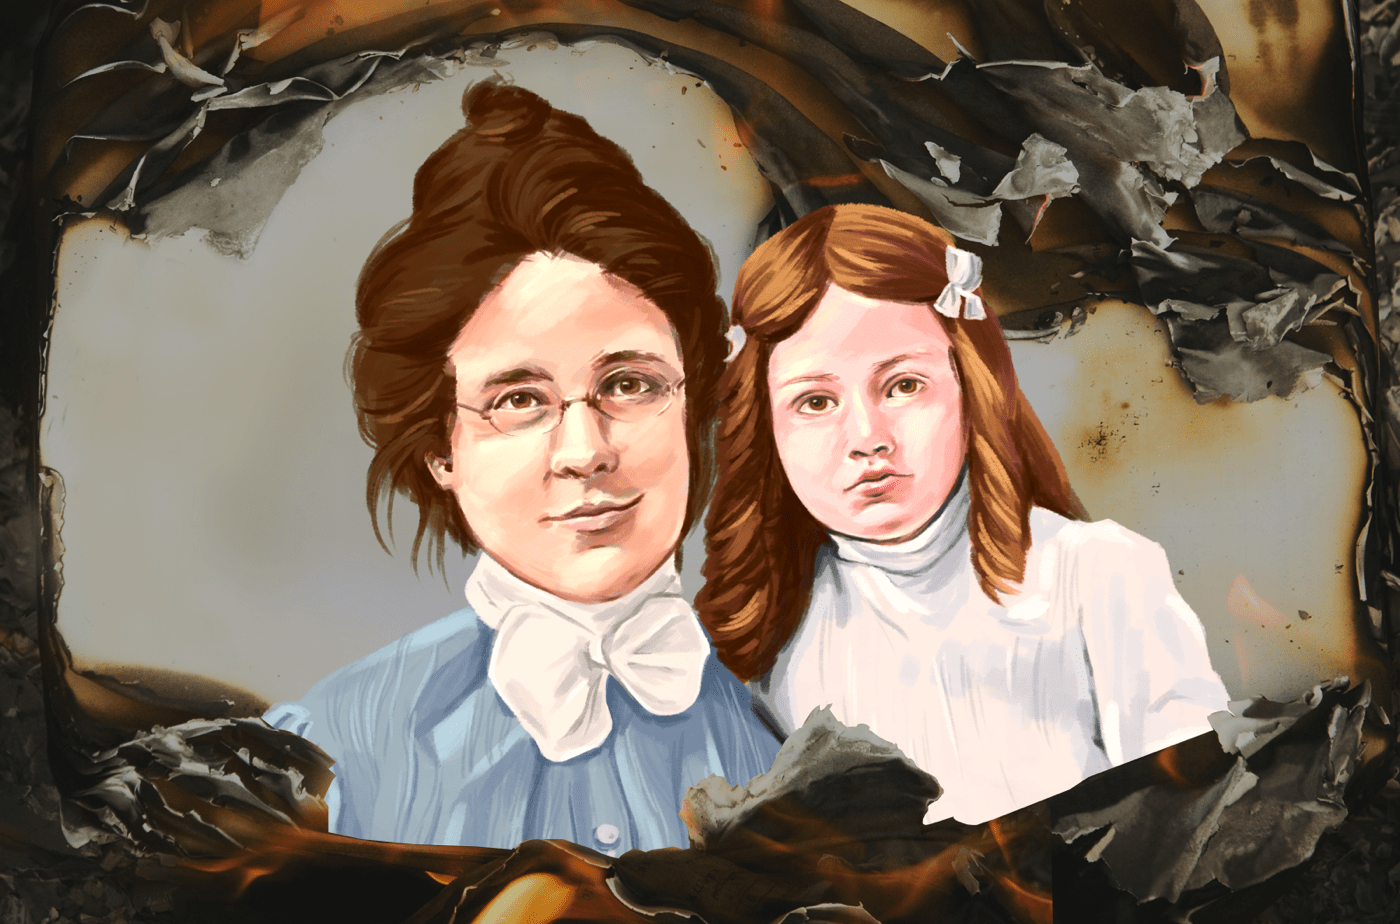 a collage of an illustration of a mother with glasses posing next to a young girl in a white dress and pigtails. they are both wearing clothes from the 19th century. The illustration is framed by a burned paper